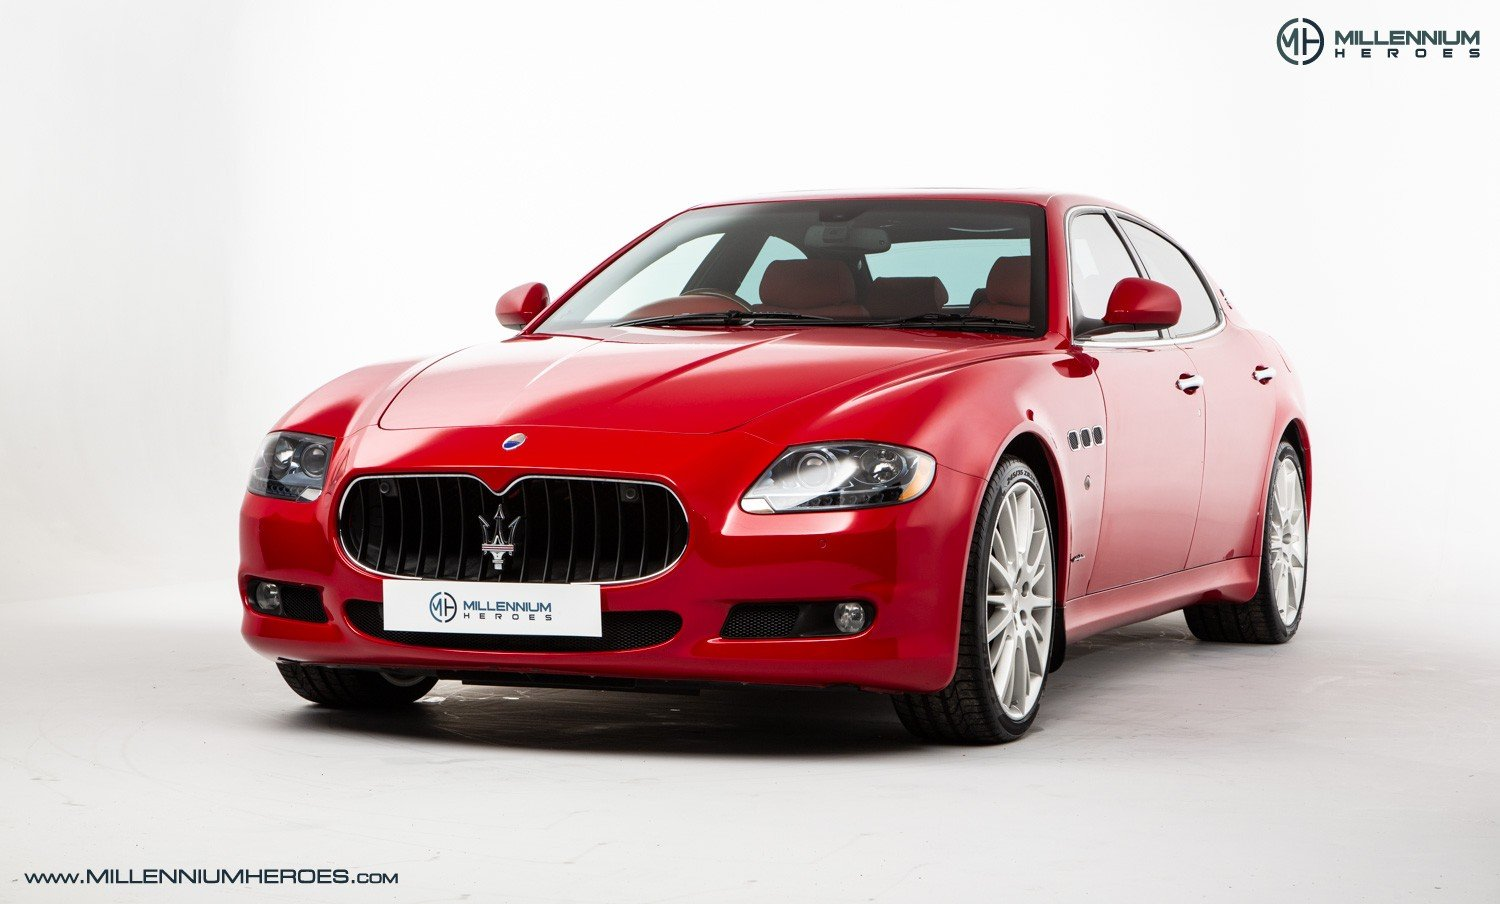 2010 MASERATI QUATTROPORTE 4.7 GTS // SPECIAL PAINT ROSSO MONDIAL For Sale (picture 1 of 6)